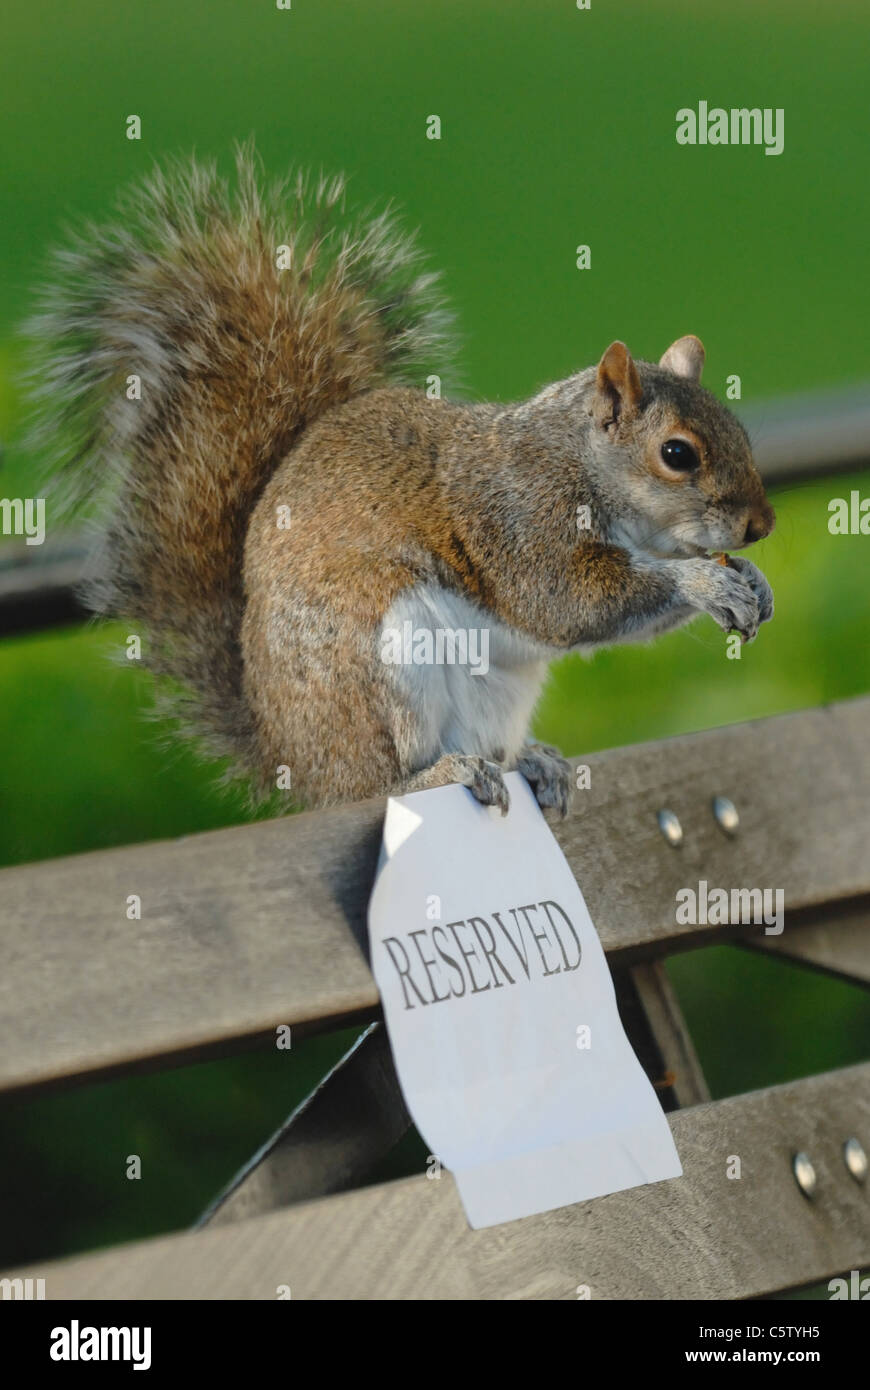 Squirrel eating a nut on a reserved seat - Stock Image